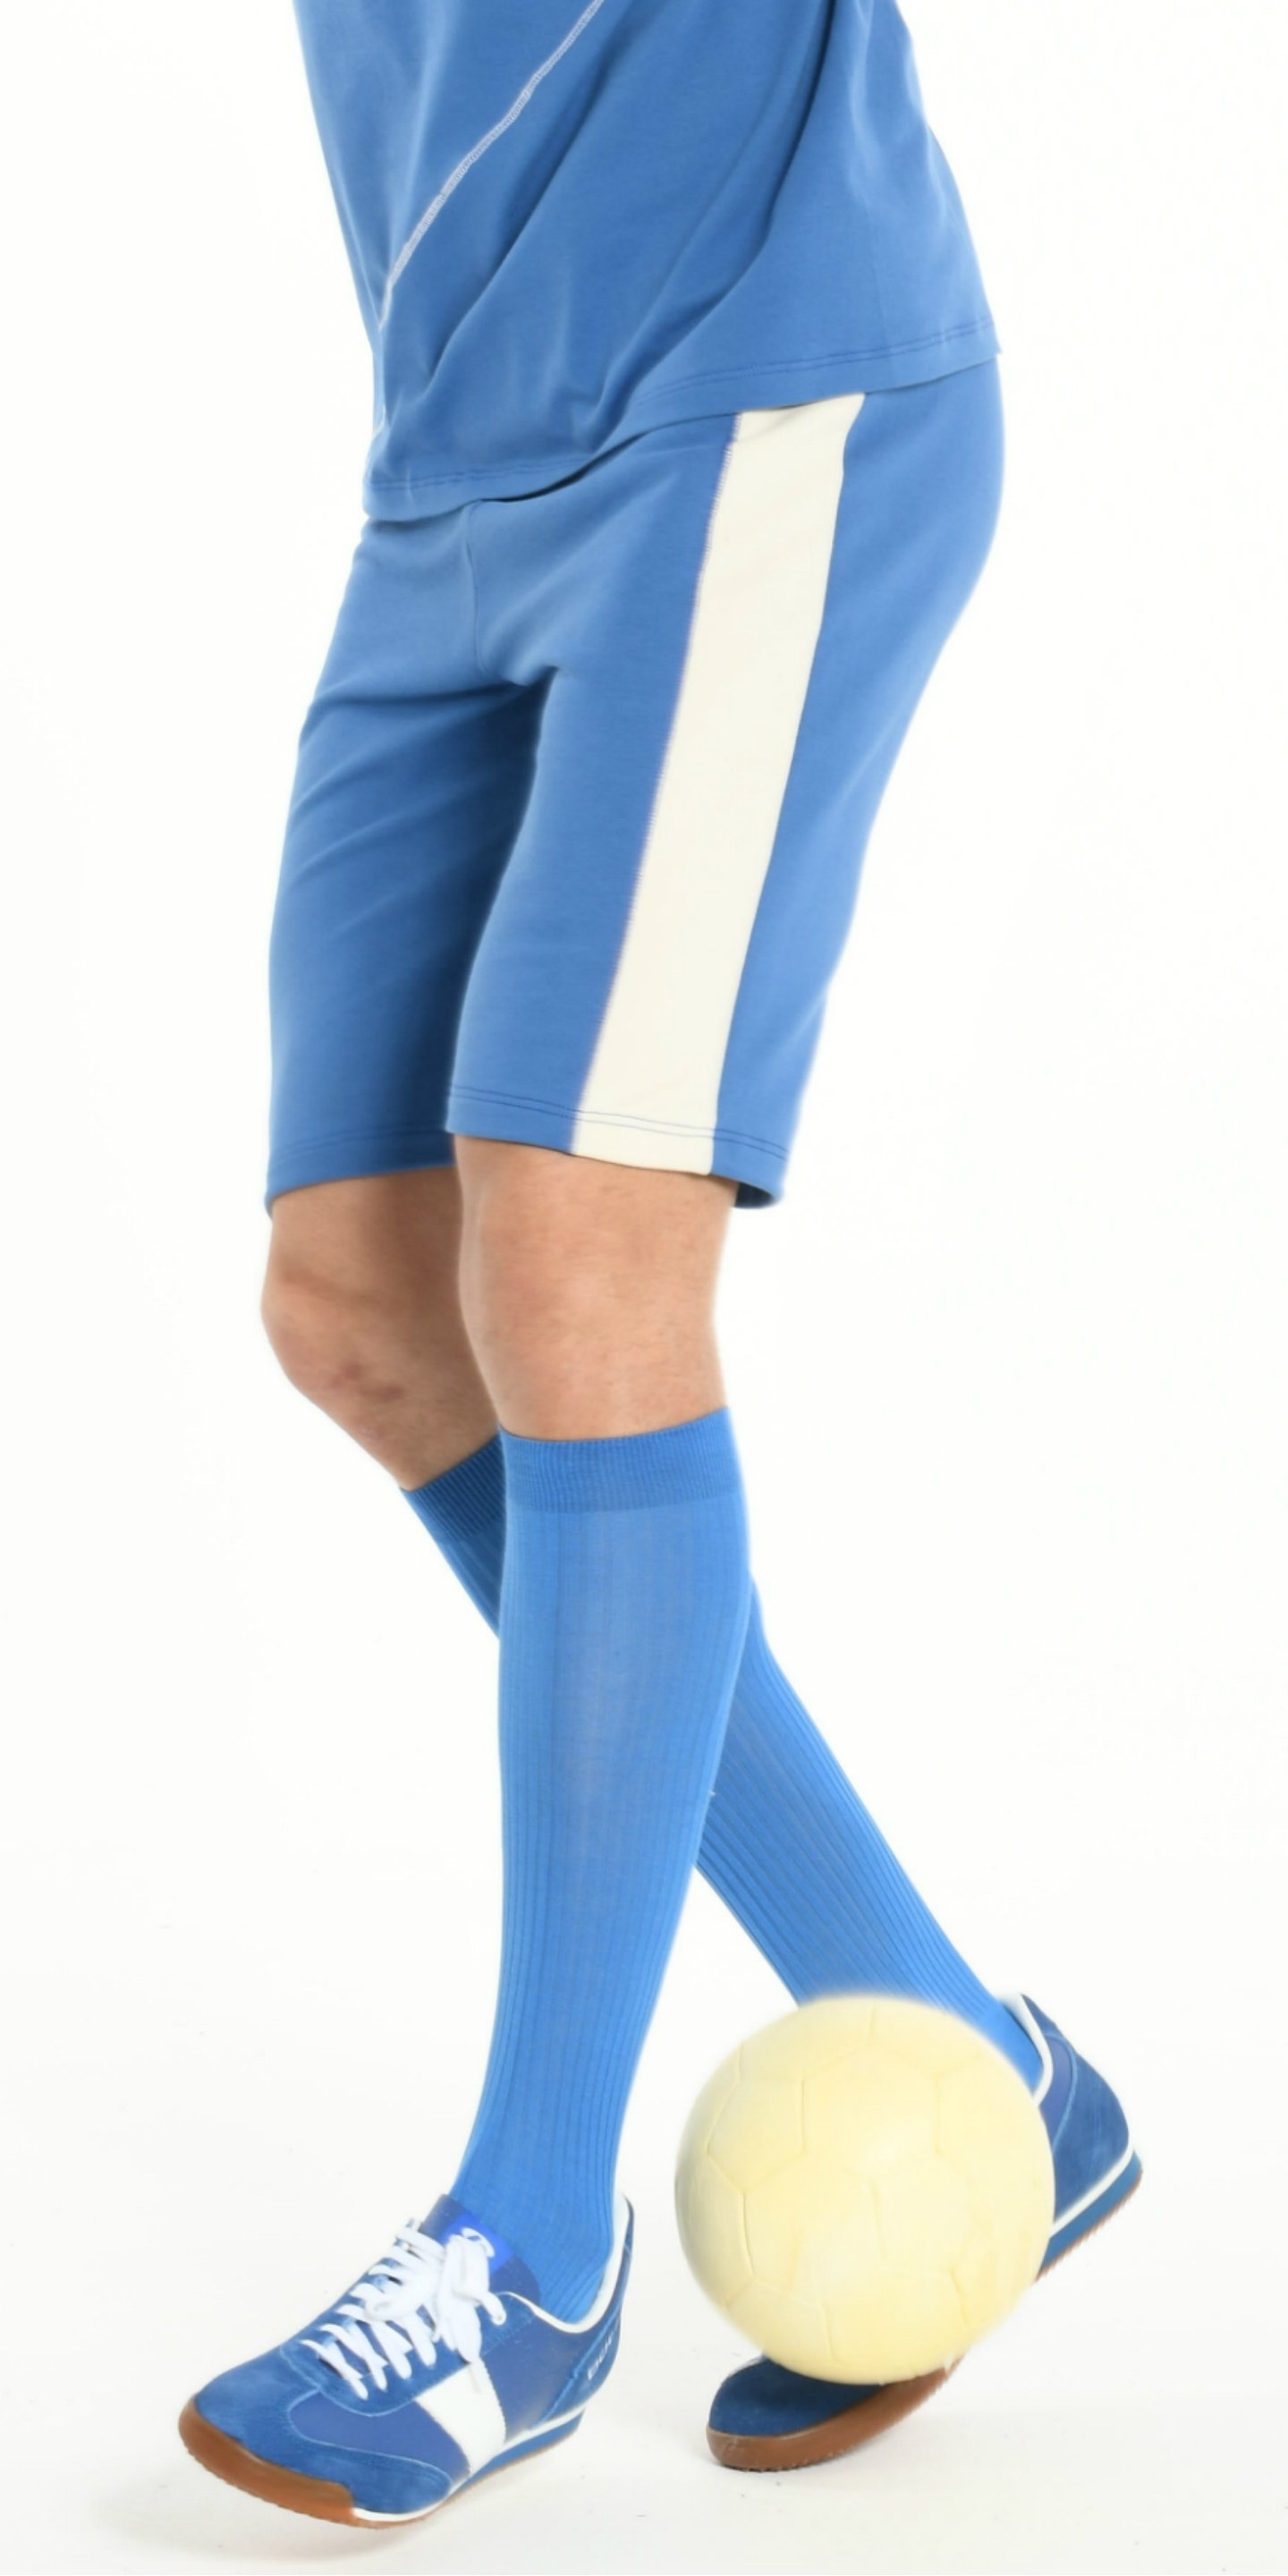 SHORT BLUE WITH OFFWHITE STRIP from BEARD & FRINGE